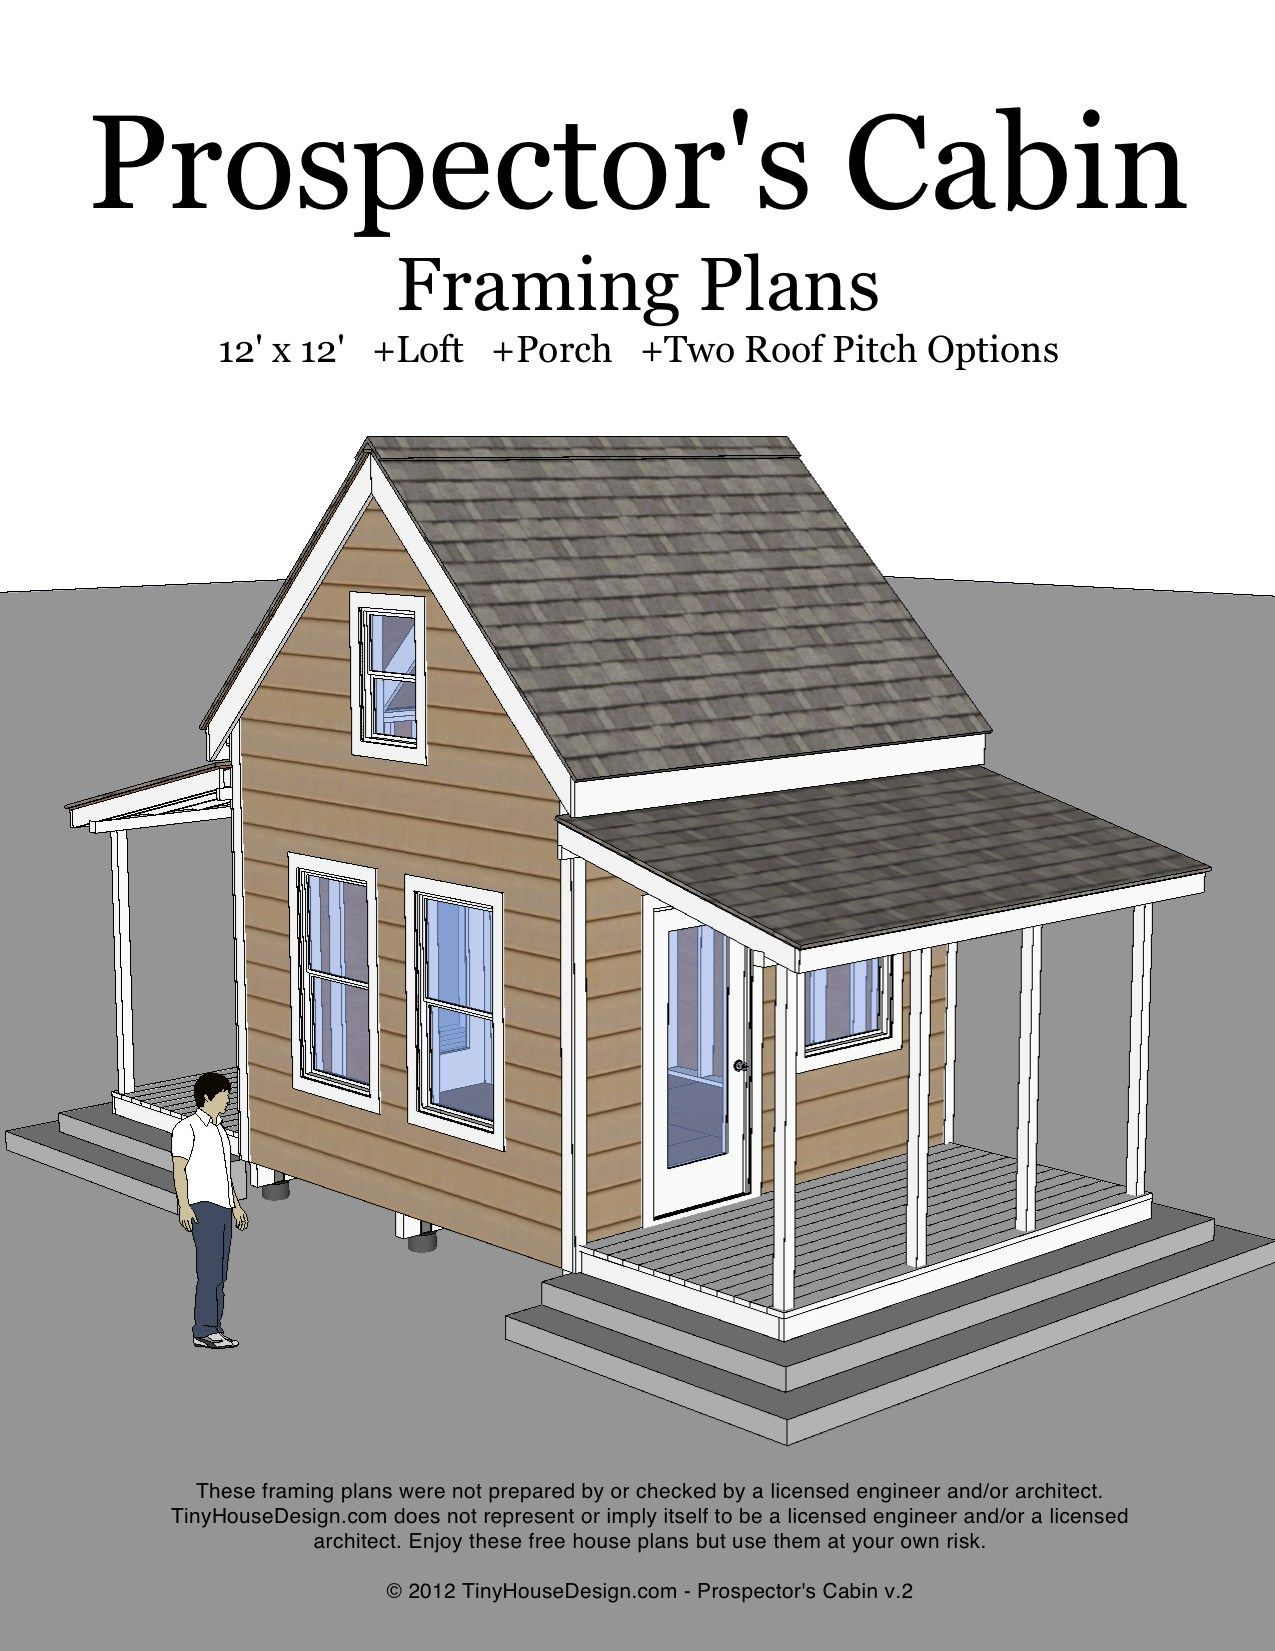 Prospector S Cabin V 2 12 X12 Loft Front Back Porch 8 12 12 12 Roof Pitch Pdf Format 47 Pages 9 95 Does Free House Plans Tiny House Plans Cabin Plans